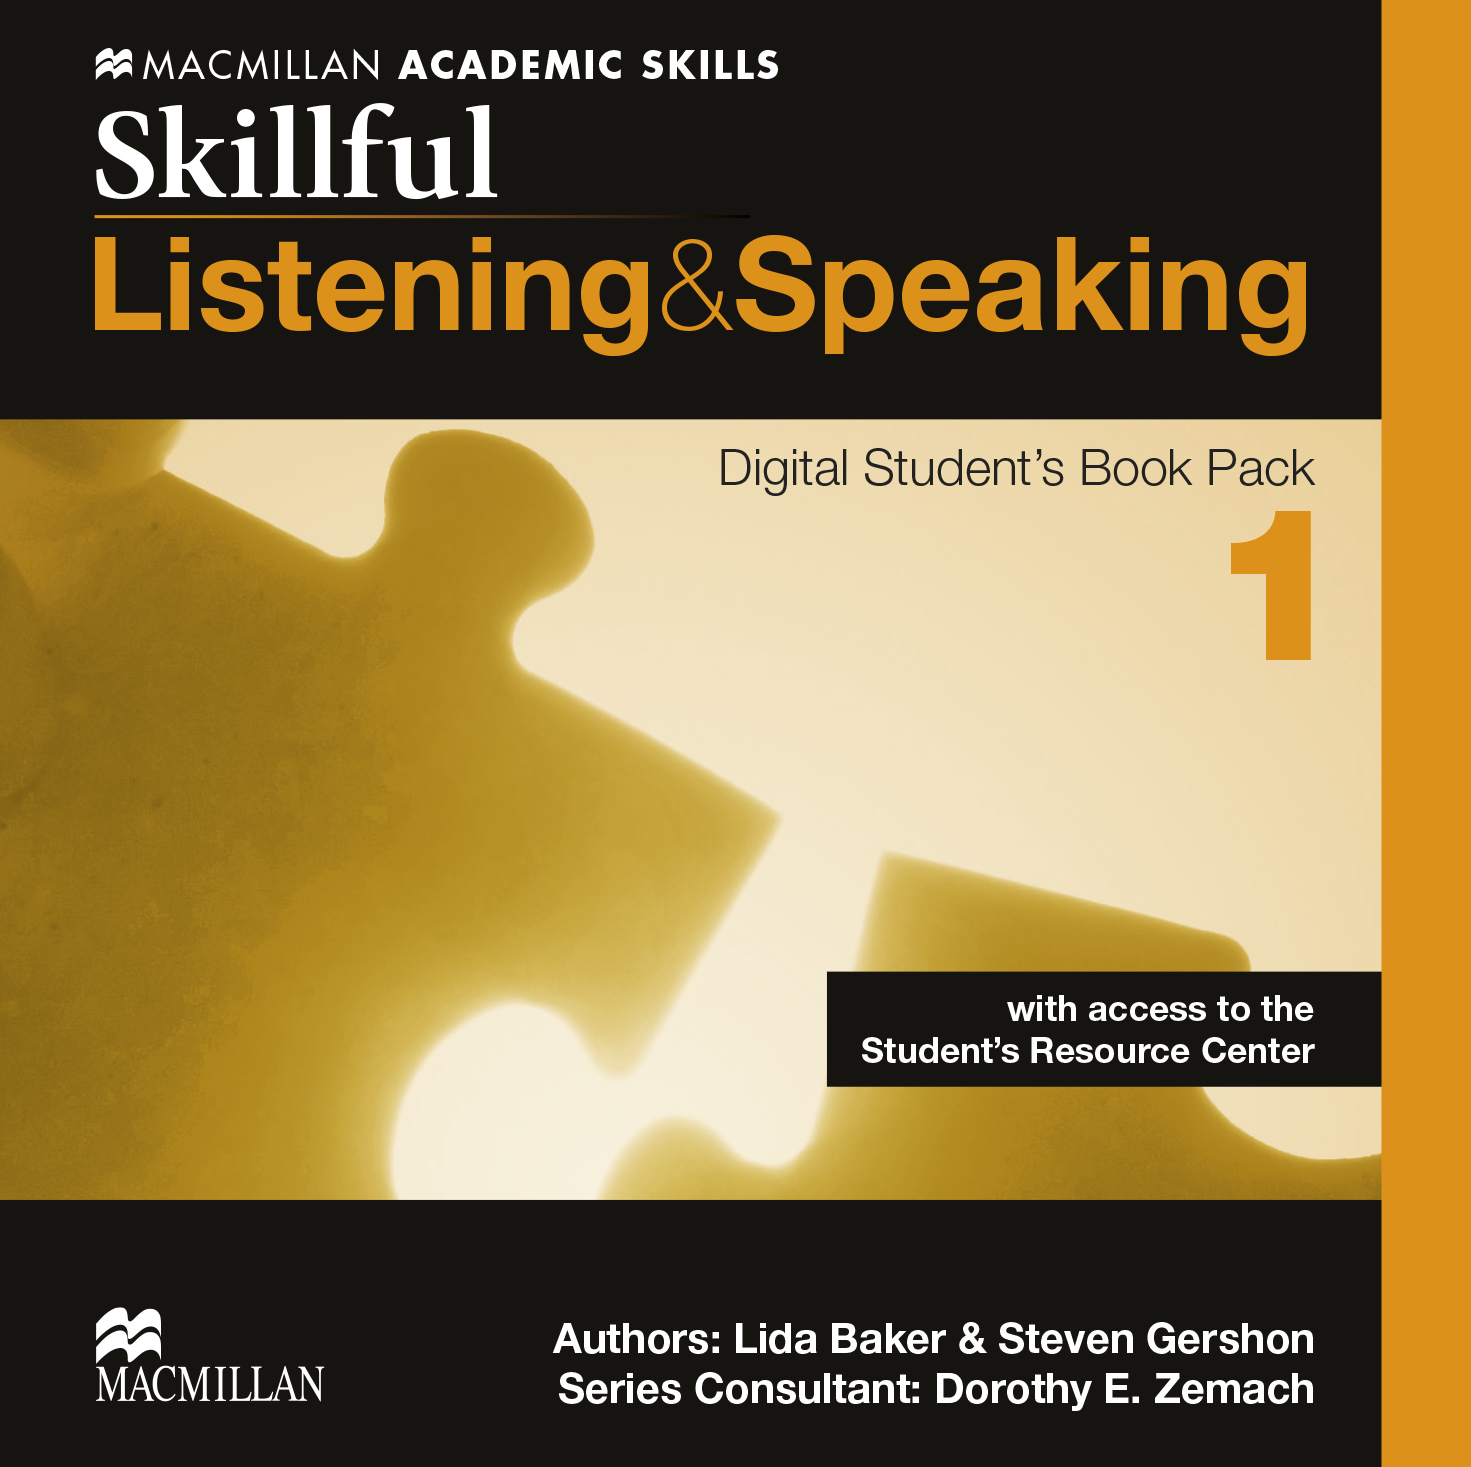 Skillful Level 1 Listening & Speaking Digital Student